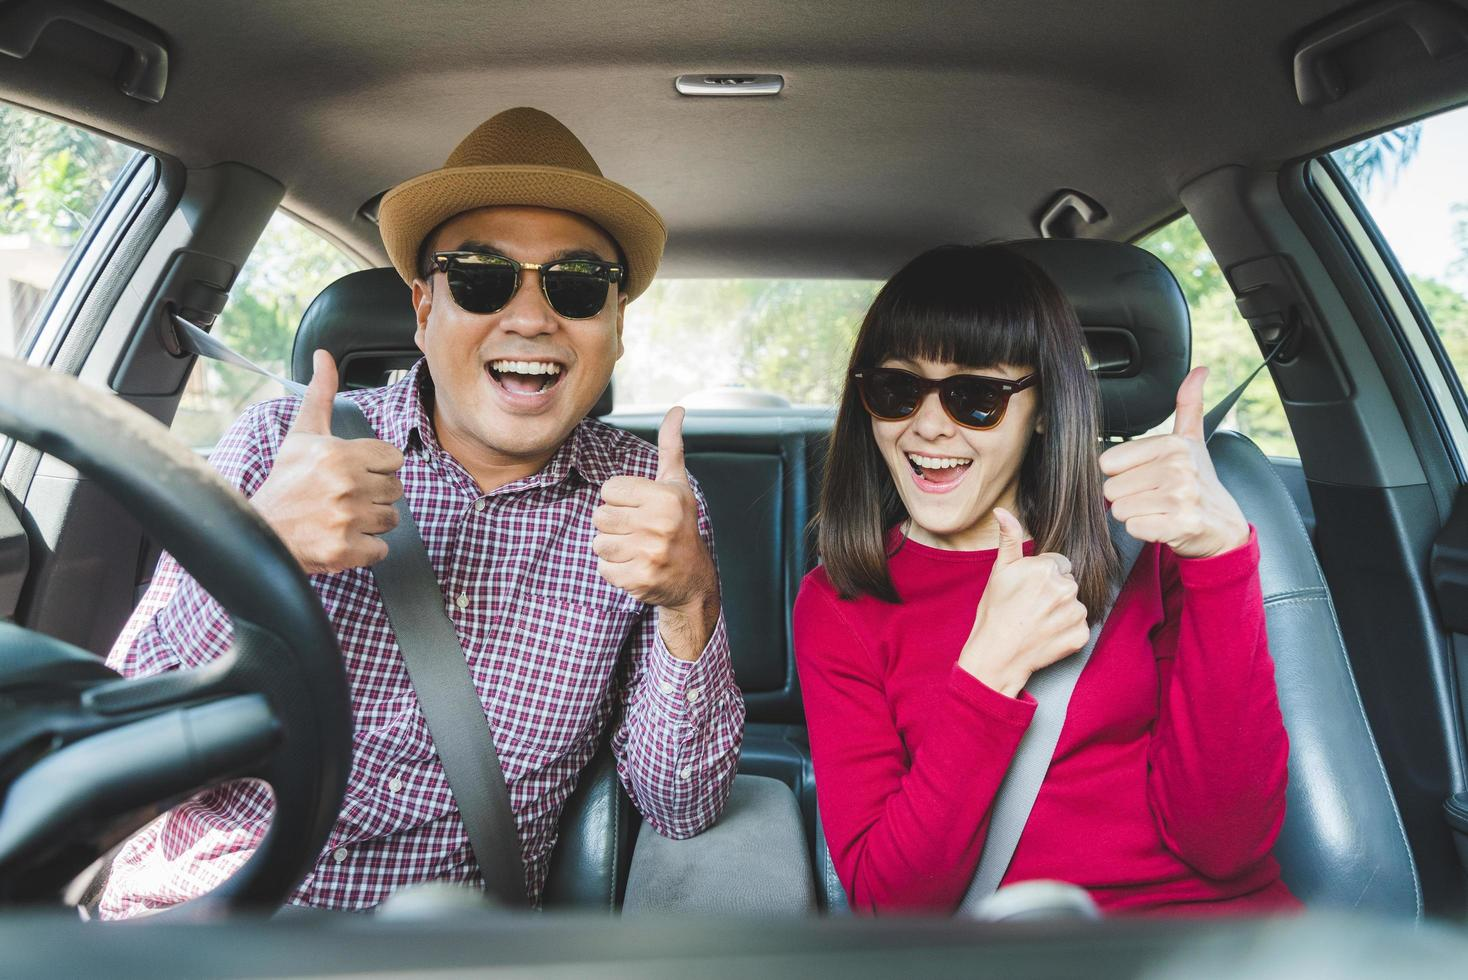 Man and woman give thumbs up in car photo